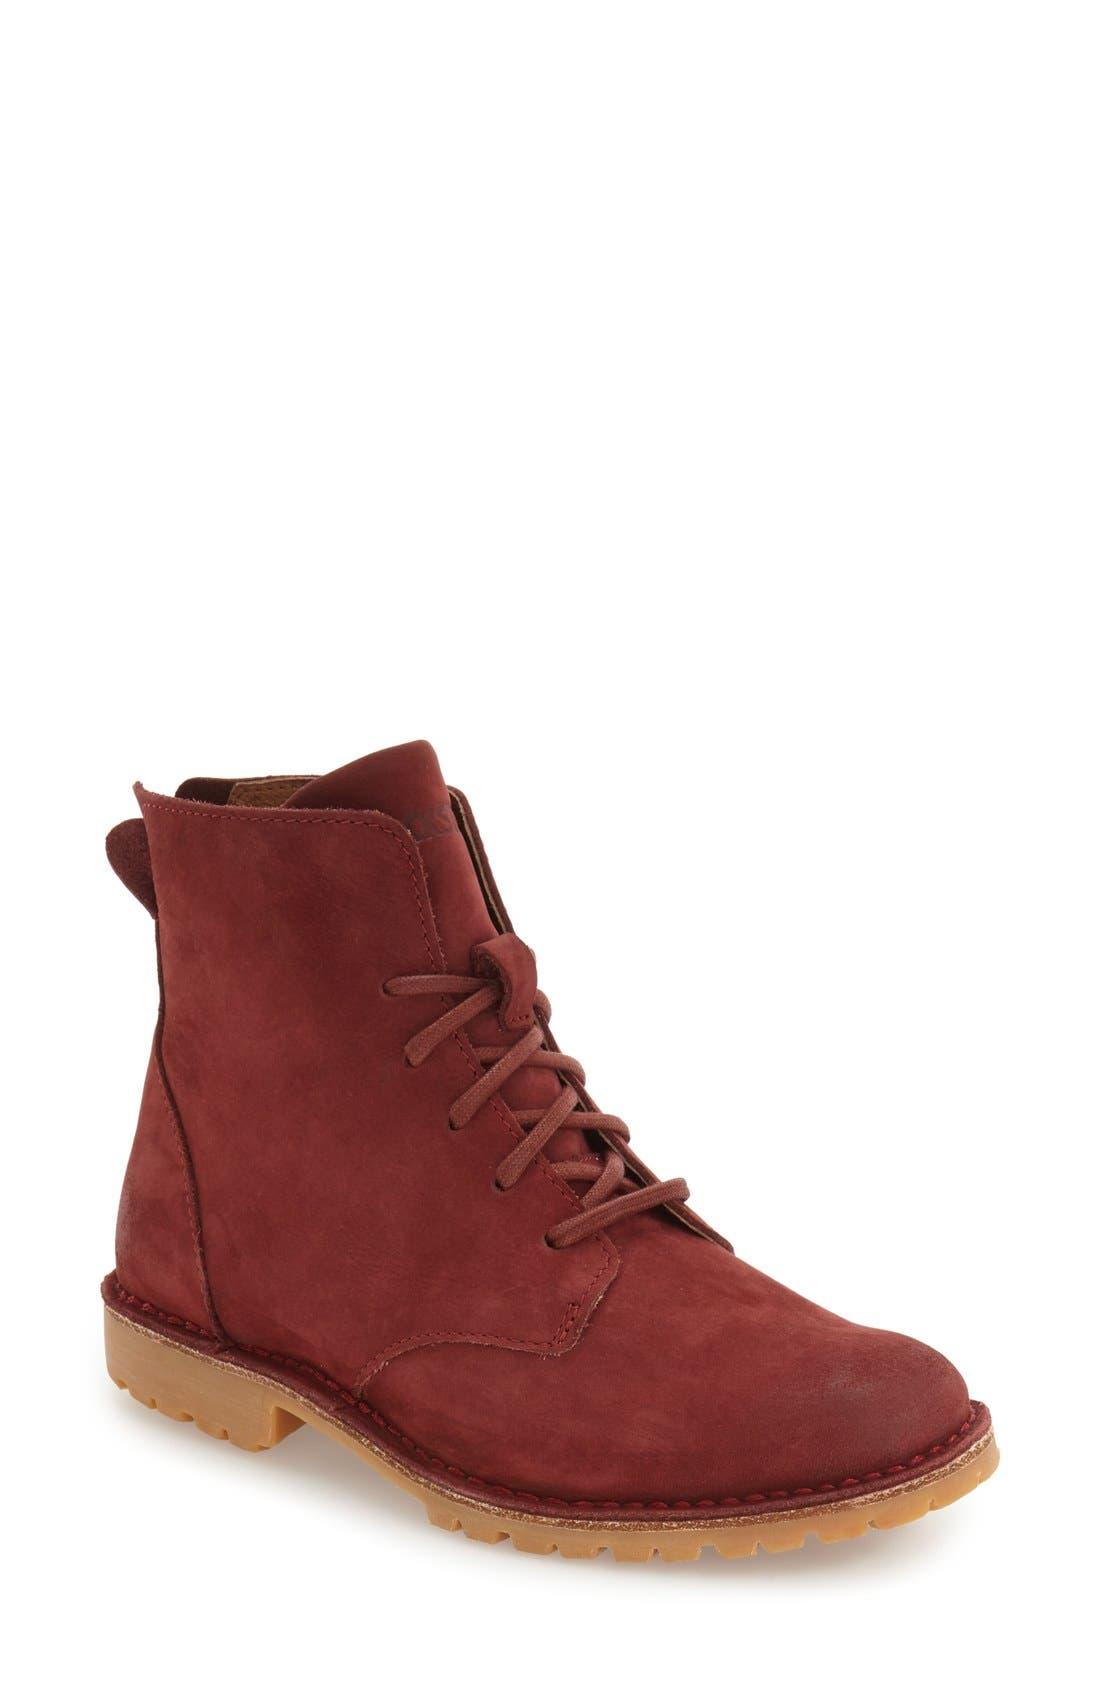 'KL67' Lace-Up Boot,                         Main,                         color, CORDOVAN NUBUCK LEATHER